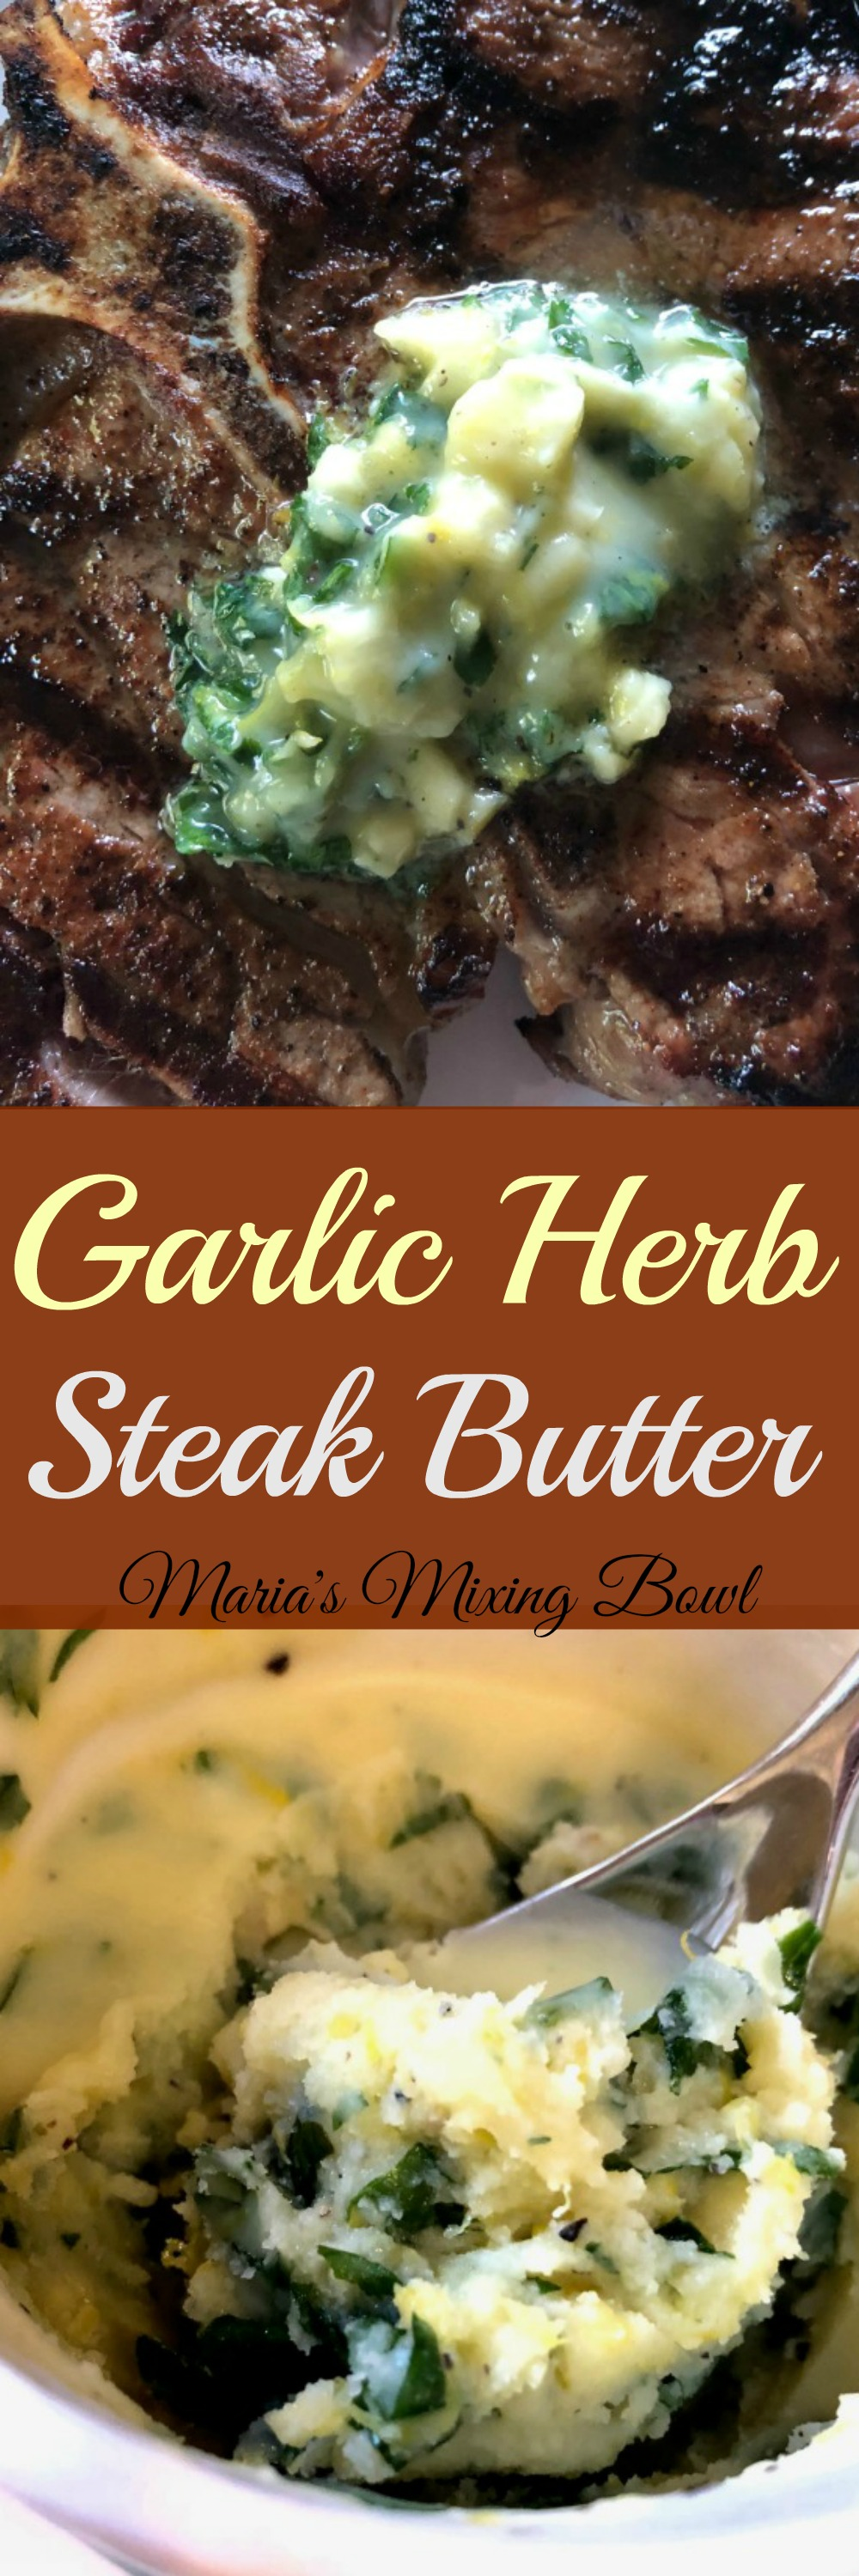 Garlic Herb Steak Butter - Slather this delectable Garlic Herb Steak Butter  on anything from steaks, burgers , pork,  chicken, even veggies!